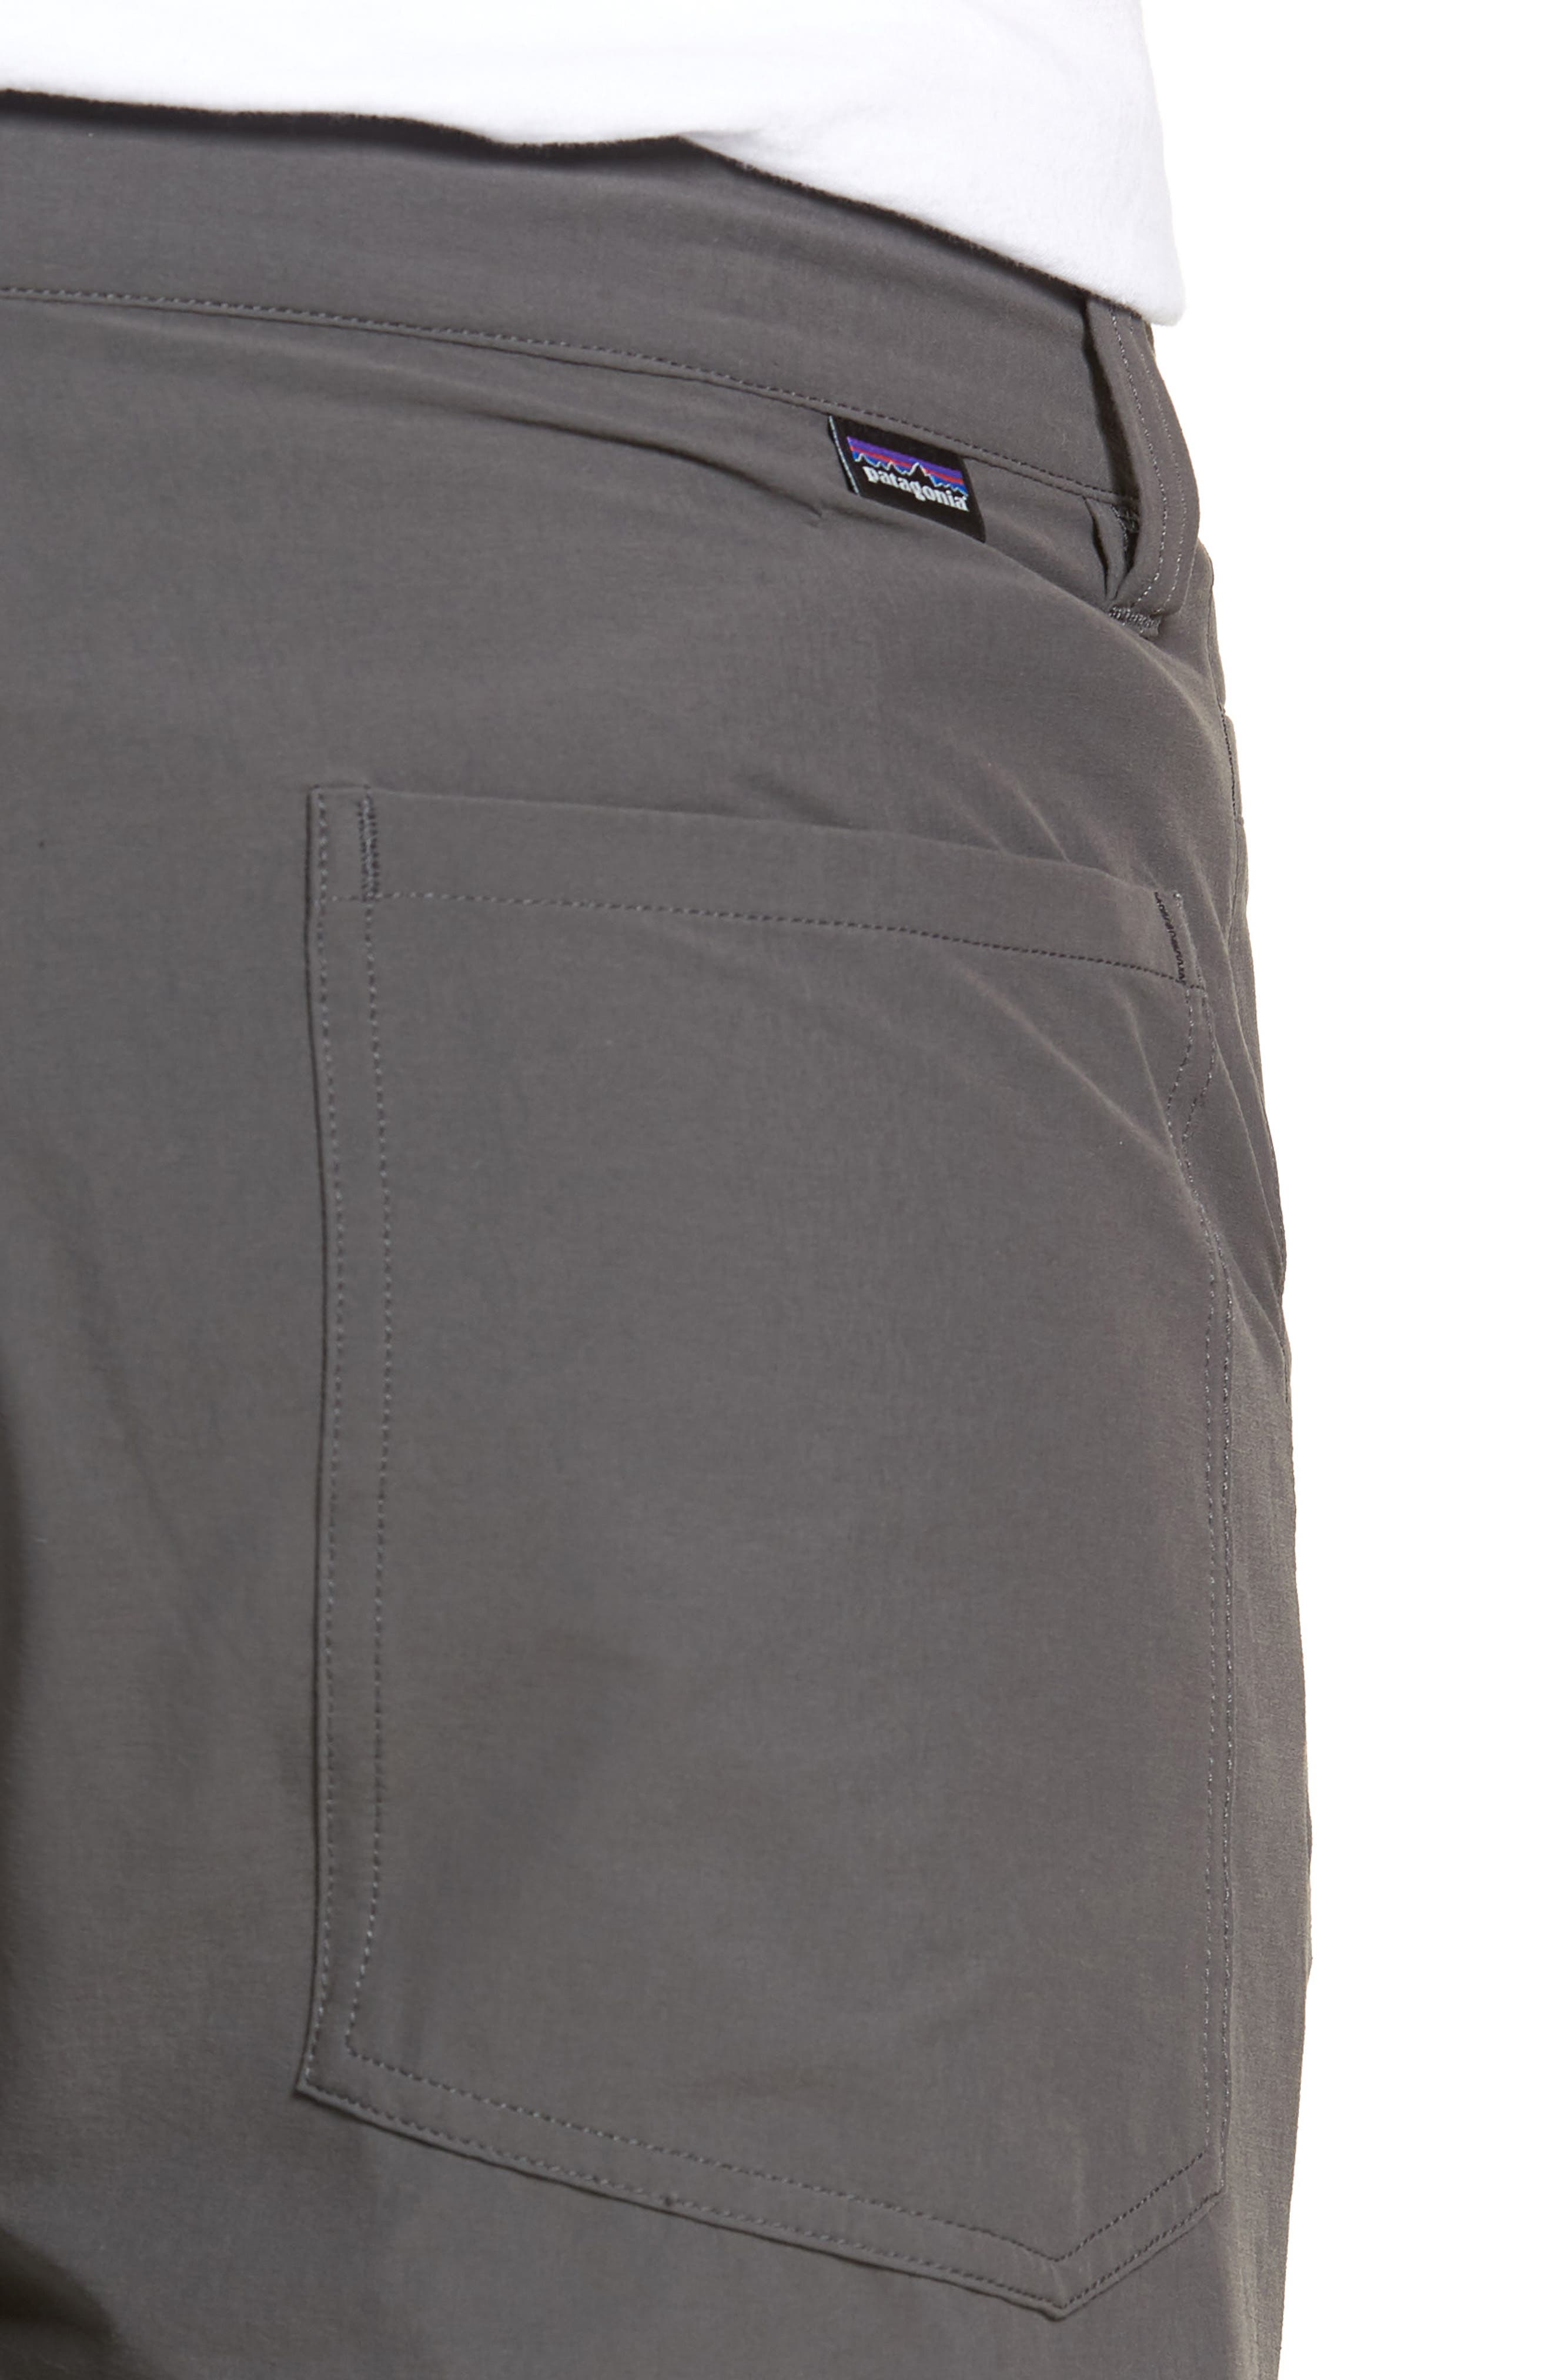 Quandary Pants,                             Alternate thumbnail 4, color,                             FORGE GREY